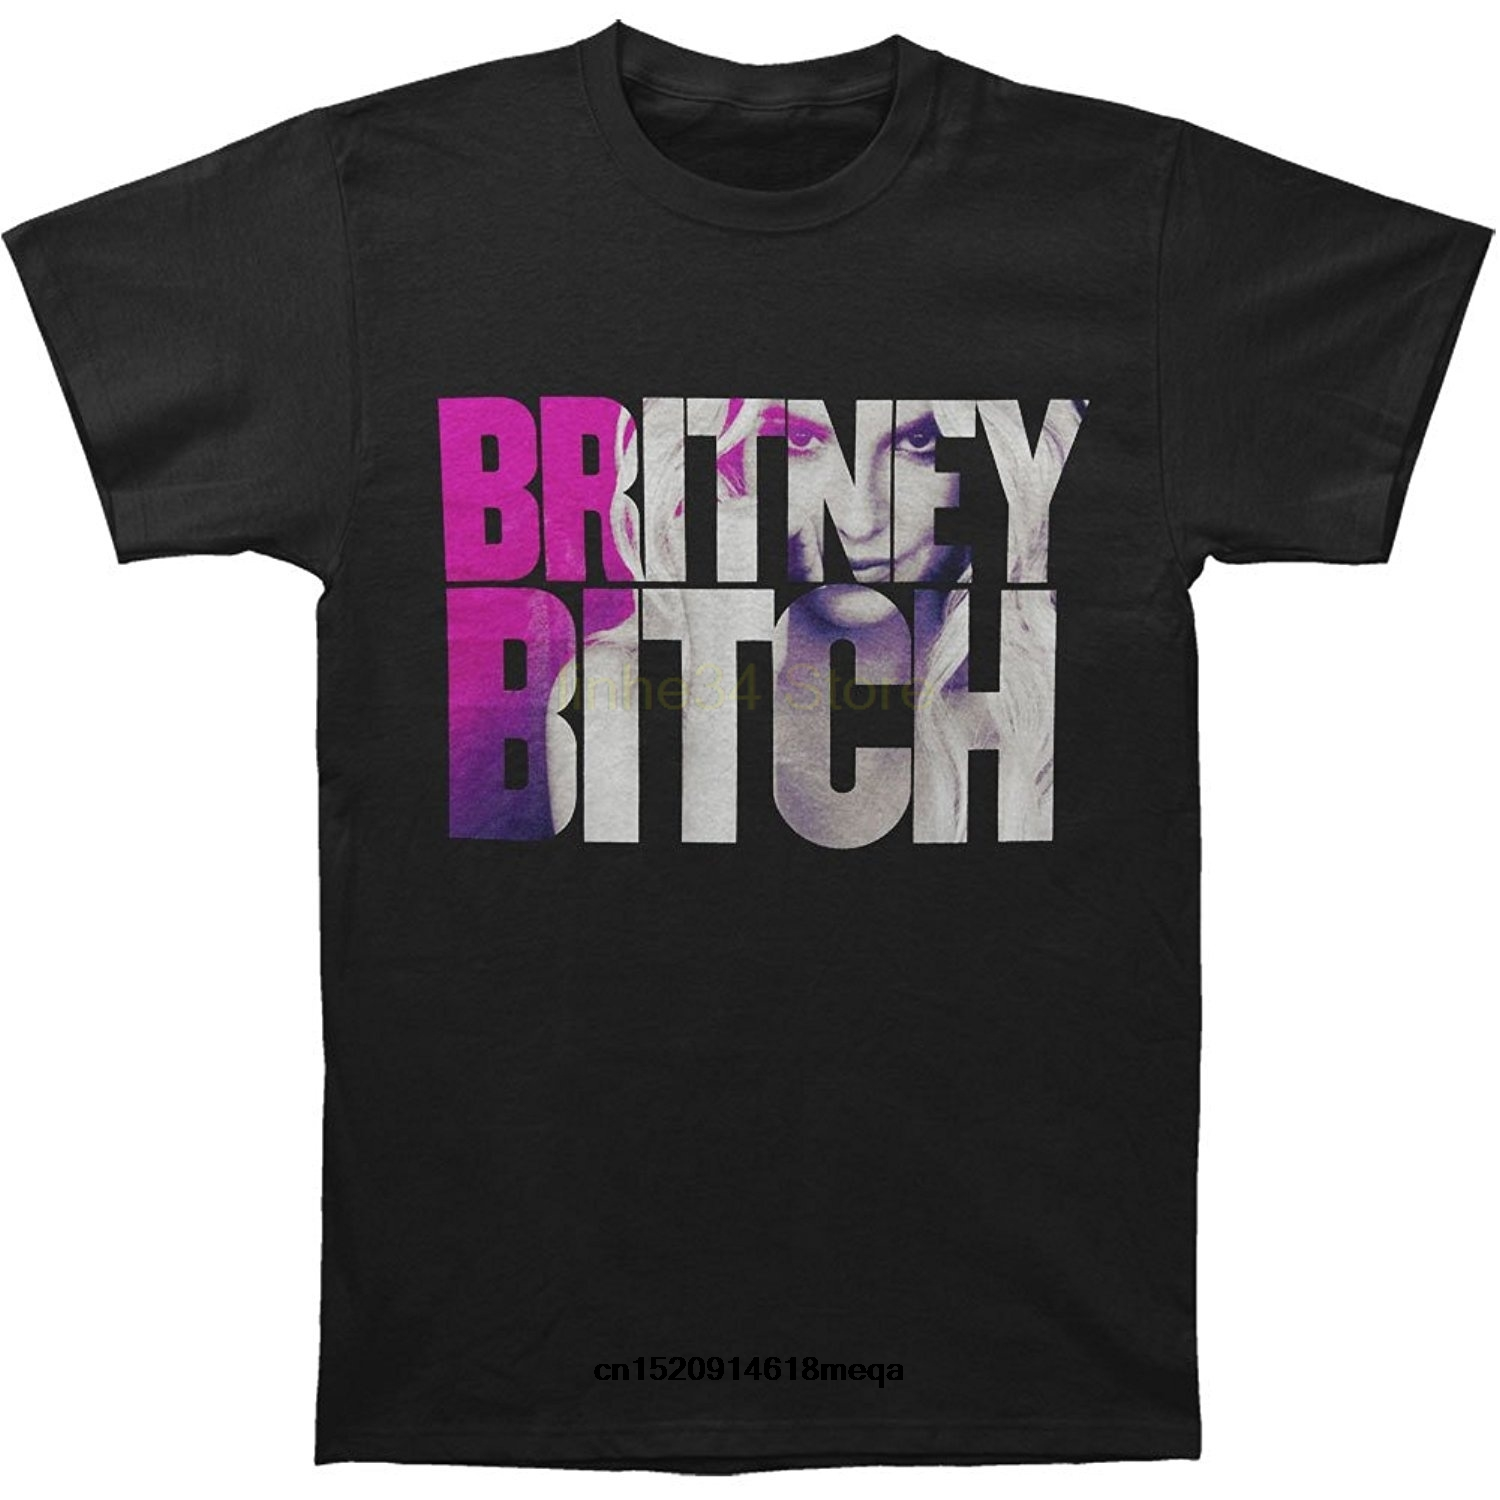 dc208df5783 Britney Spears T Shirt Men SPEARS 81 Print 100 Cotton Tee Shirt Wholesale  Male T-Shirt Basic Casual T Shirts Plus Size 5XL 6XL